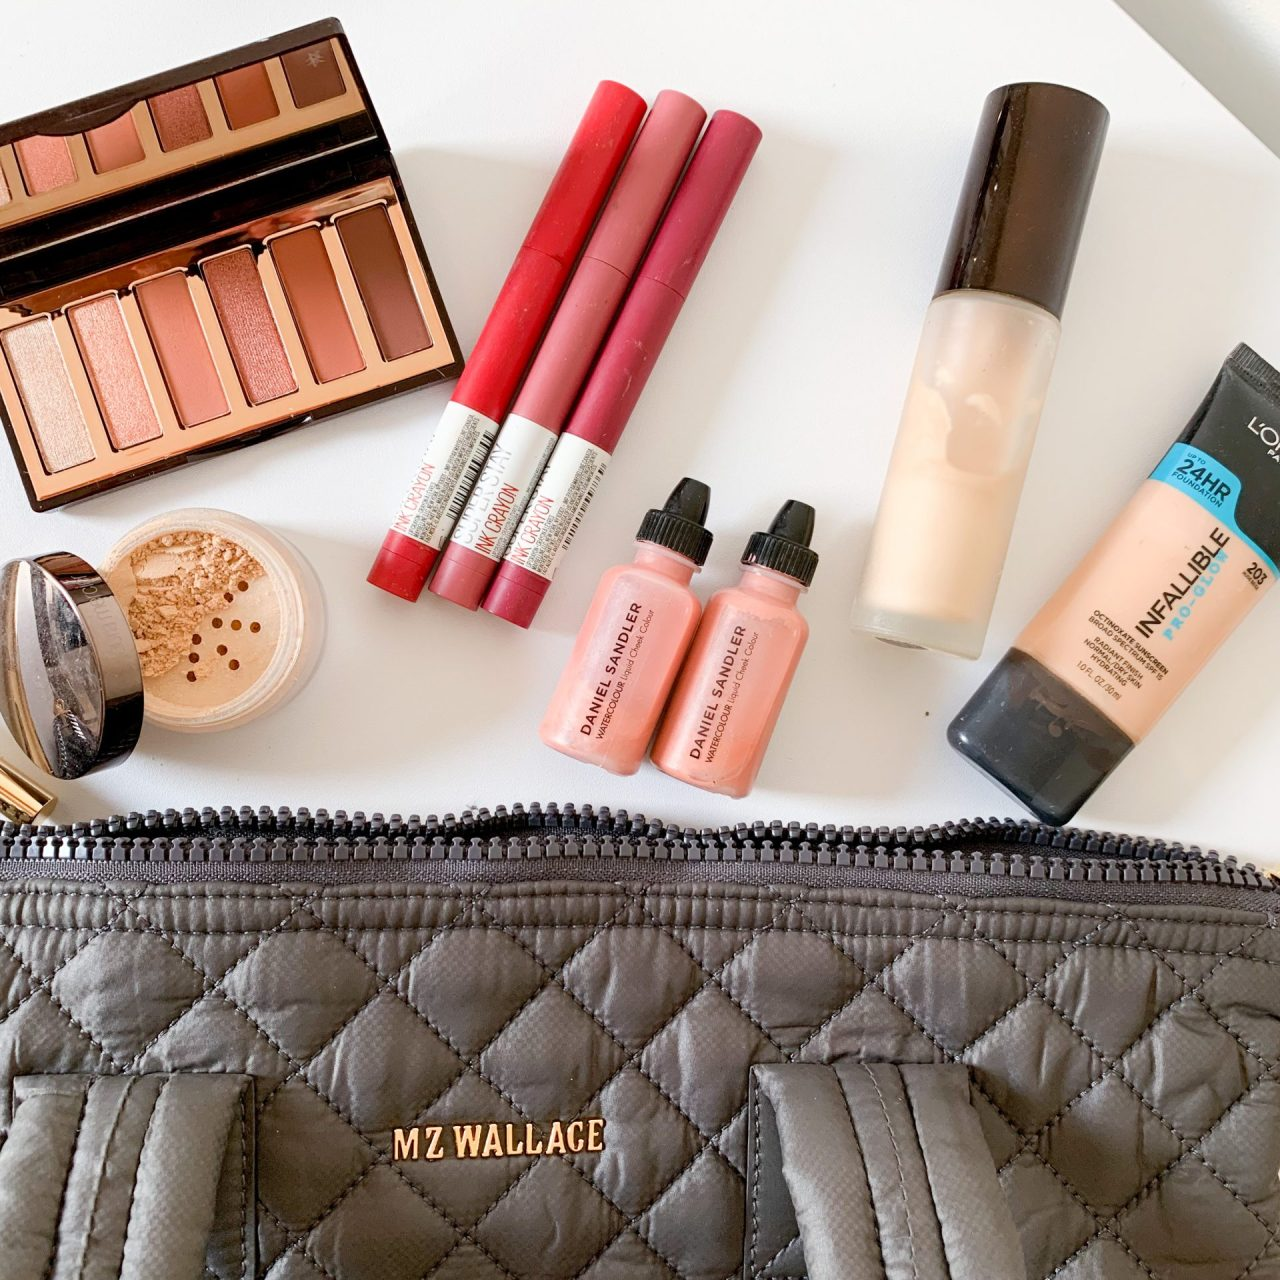 FALL MAKEUP TRENDS & PRODUCT UPDATES